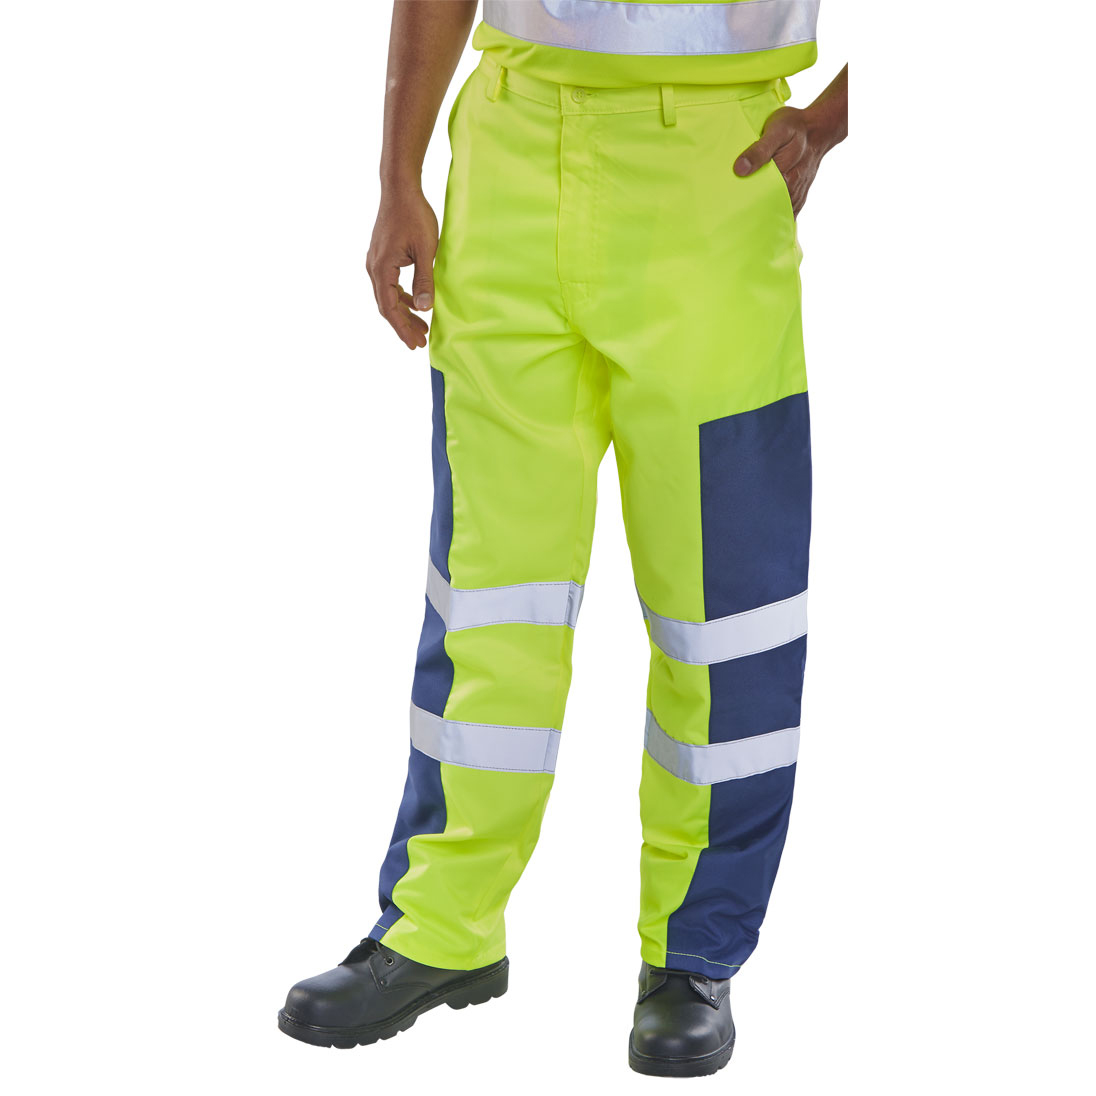 Click Workwear Trousers Hi-Vis Nylon Patch Yellow/Navy Blue 36 Ref PCTSYNNP36 *Up to 3 Day Leadtime*